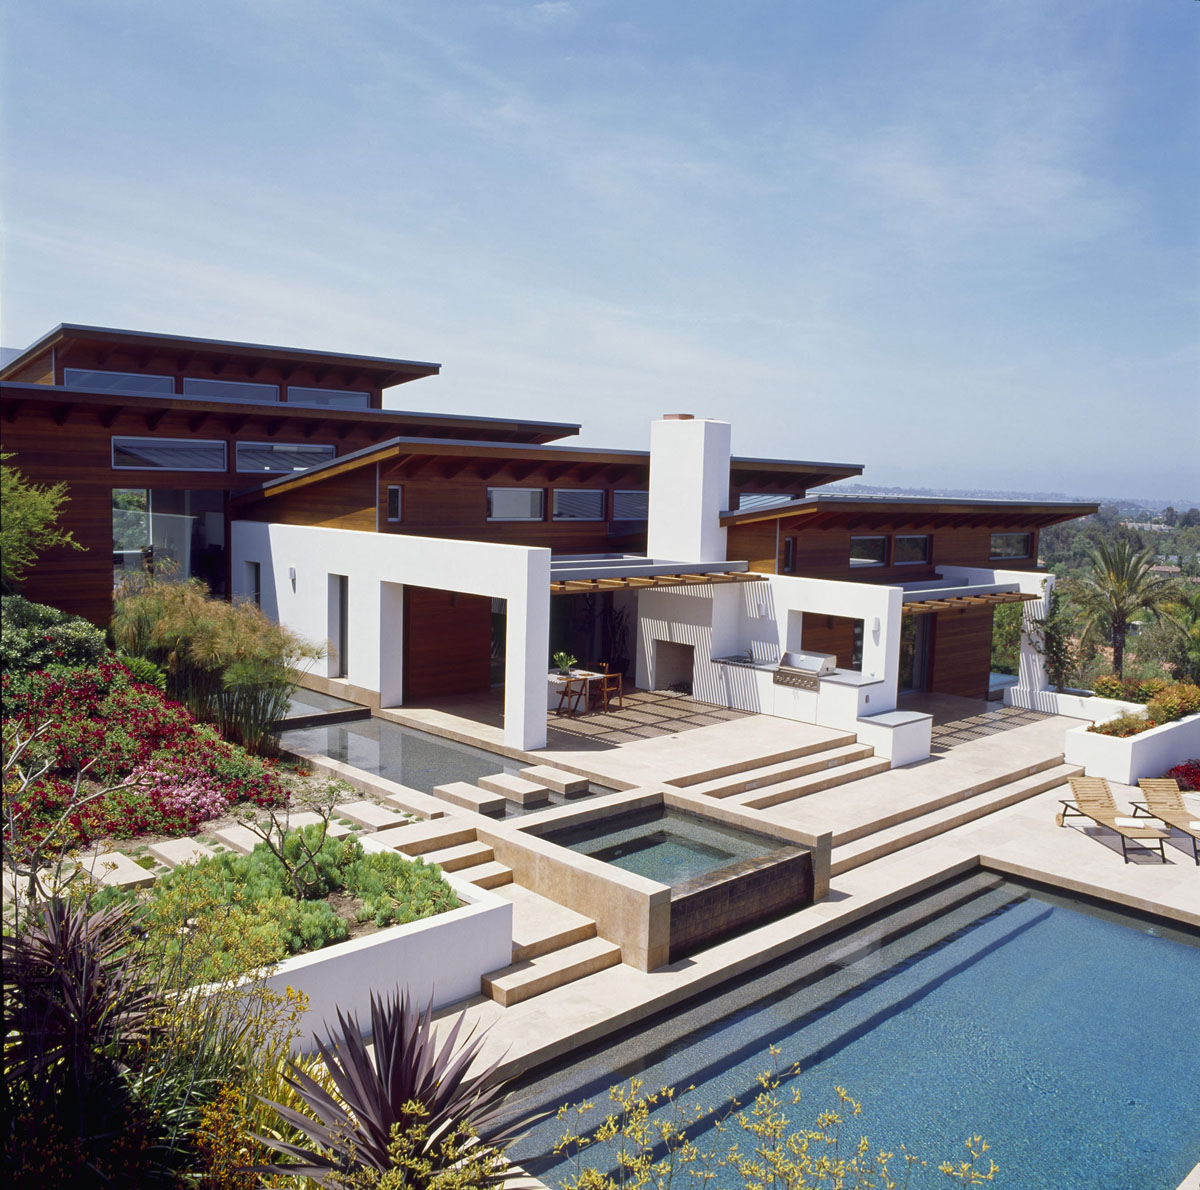 Timeless architectural estate in rancho santa fe for Luxury homes architecture design